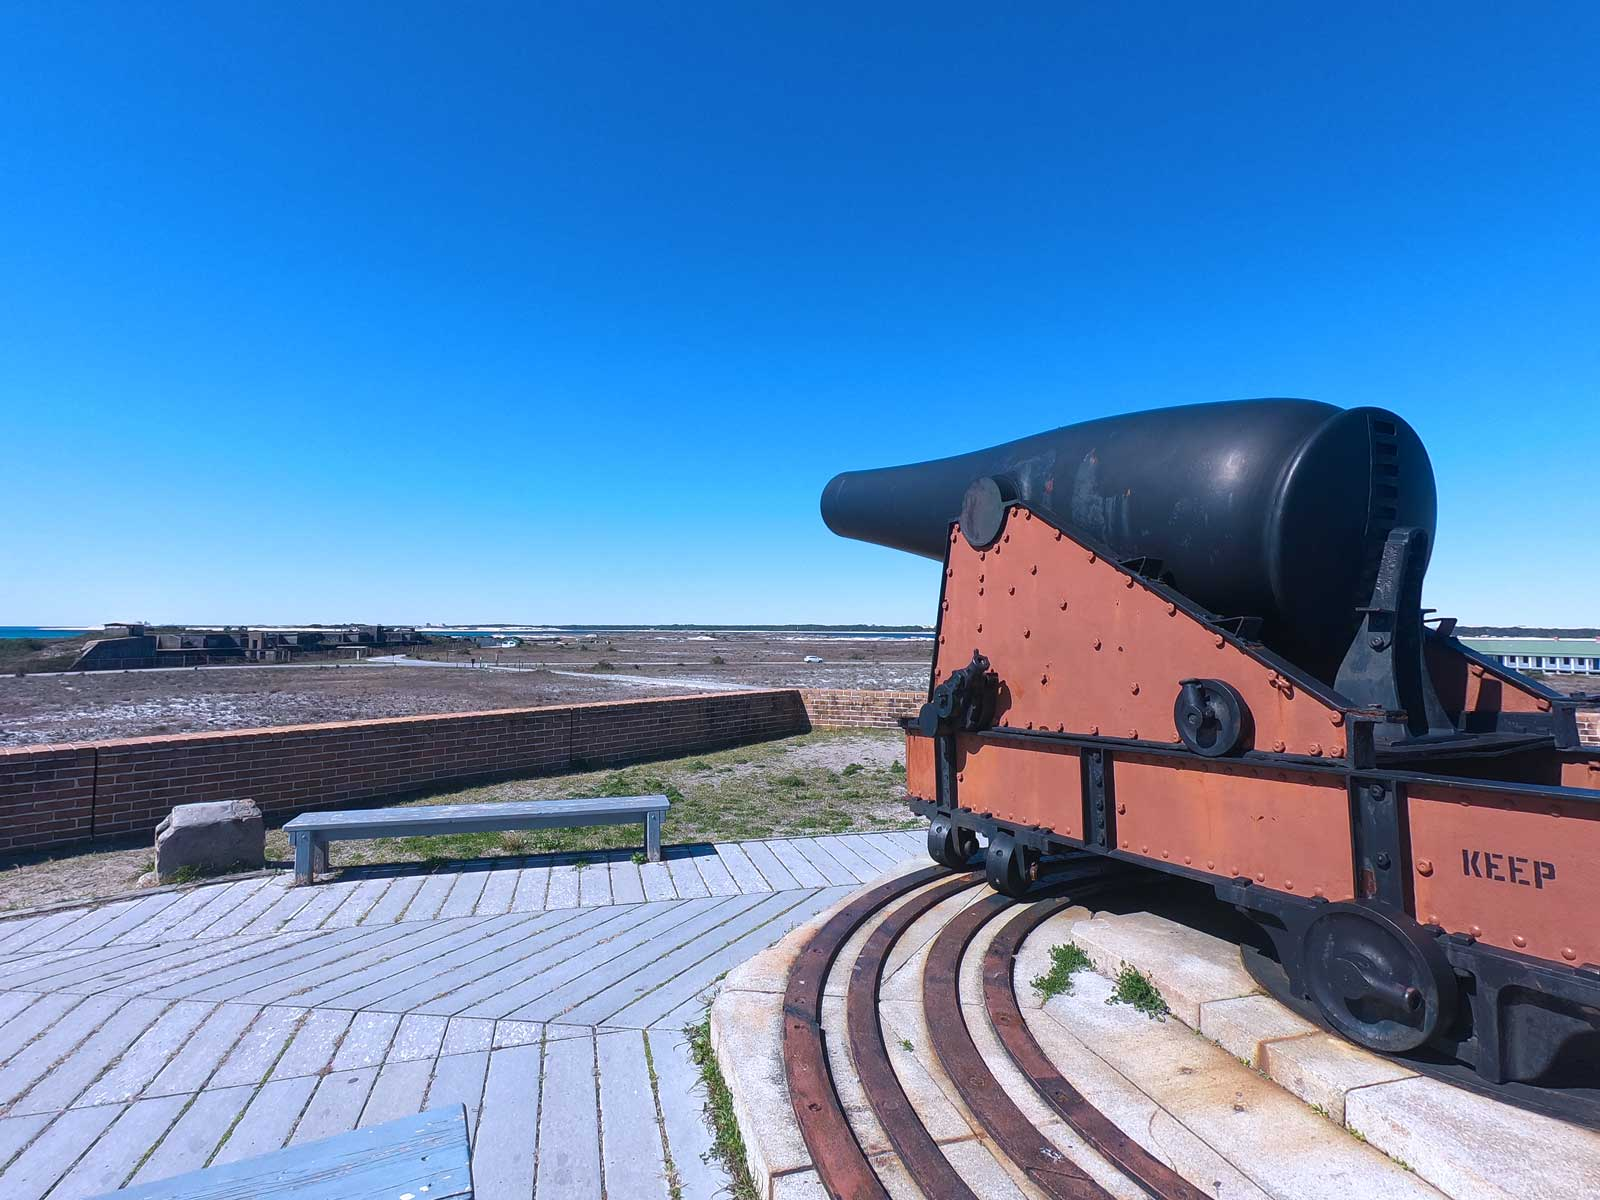 Cannon on top of Fort Pickens pointed toward Pensacola Bay, Florida